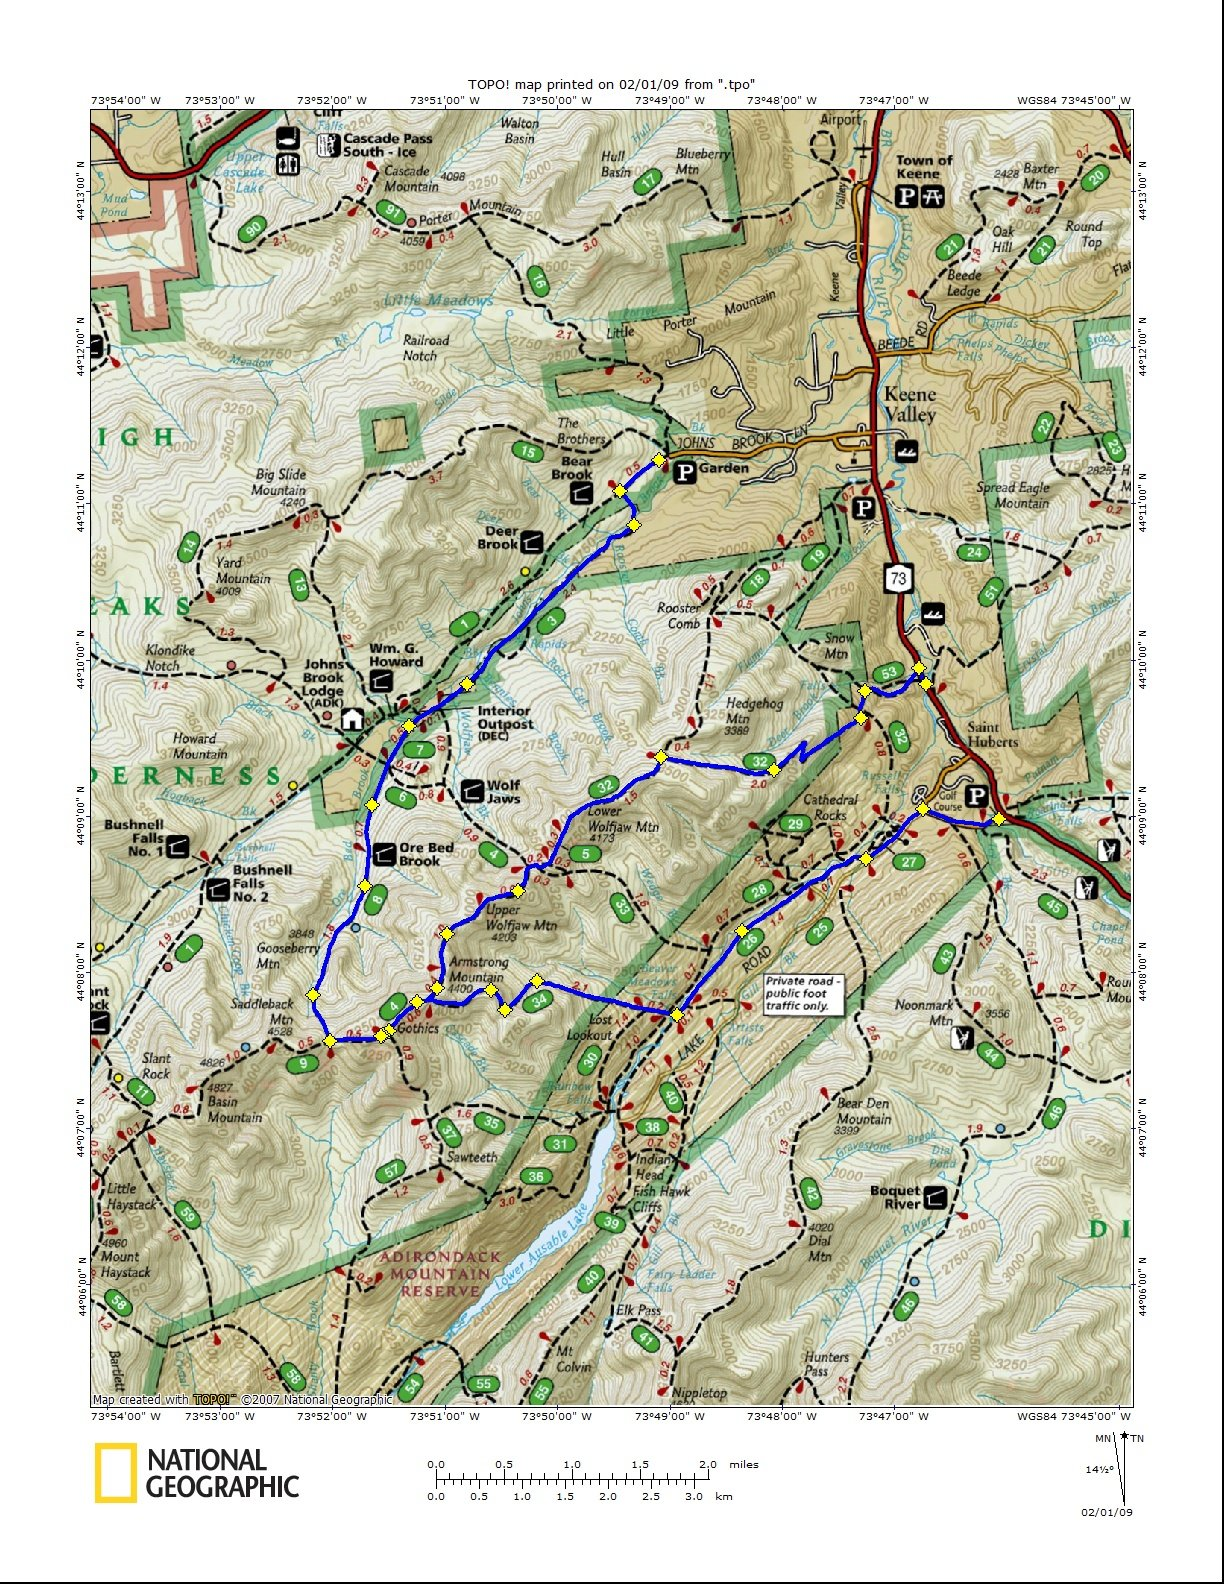 Gothics Mountain Hiking Trail Guide: Map, Trail Descriptions, Pictures & More